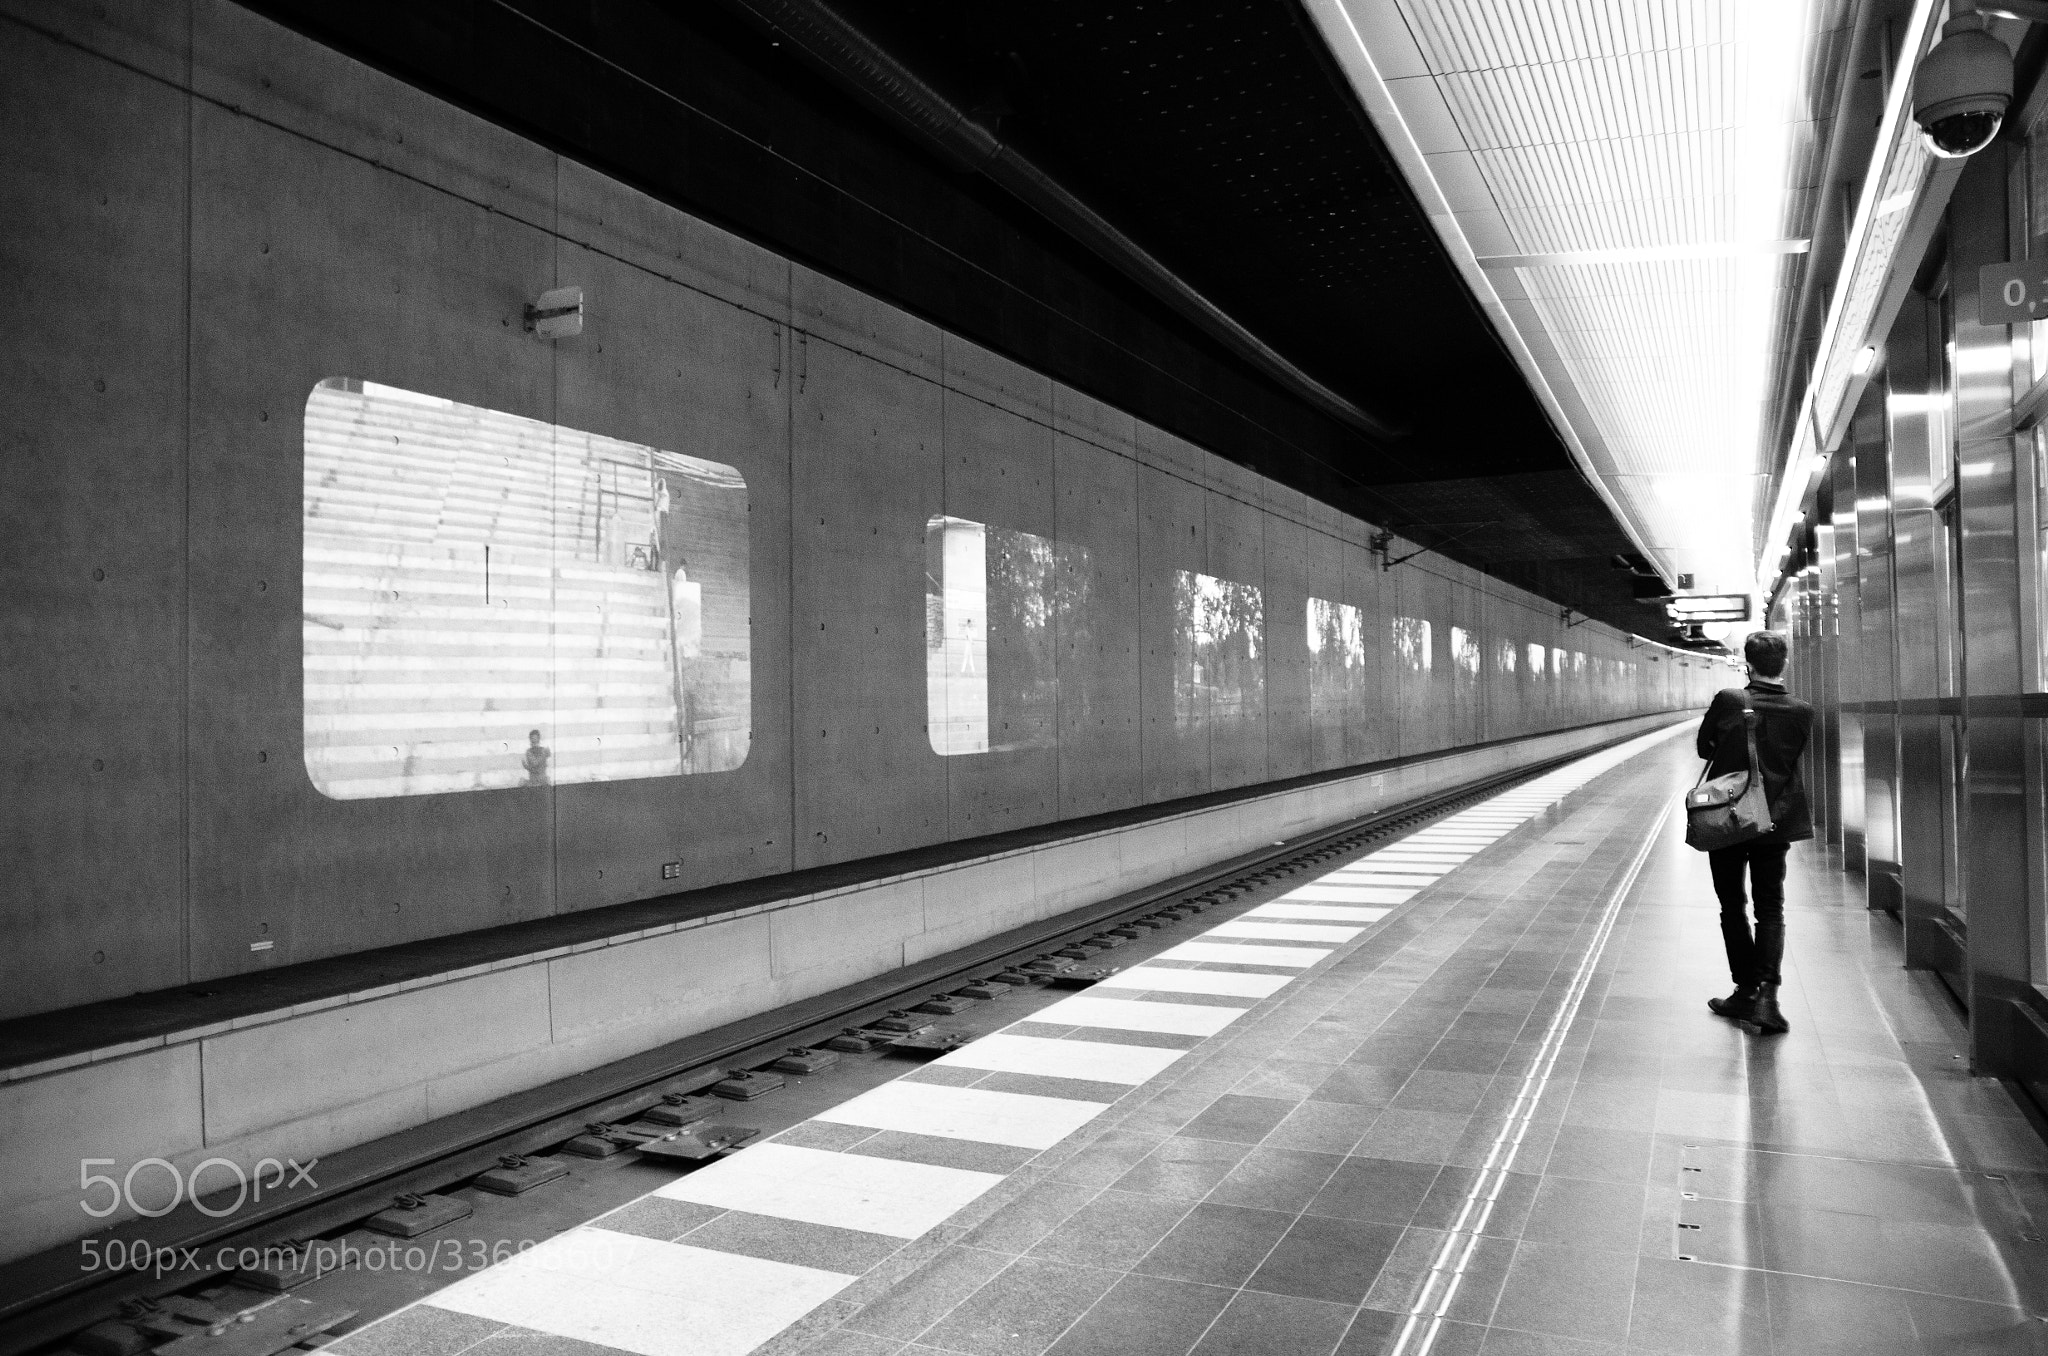 Photograph A Train in the Wall by Nuno  Bonito on 500px